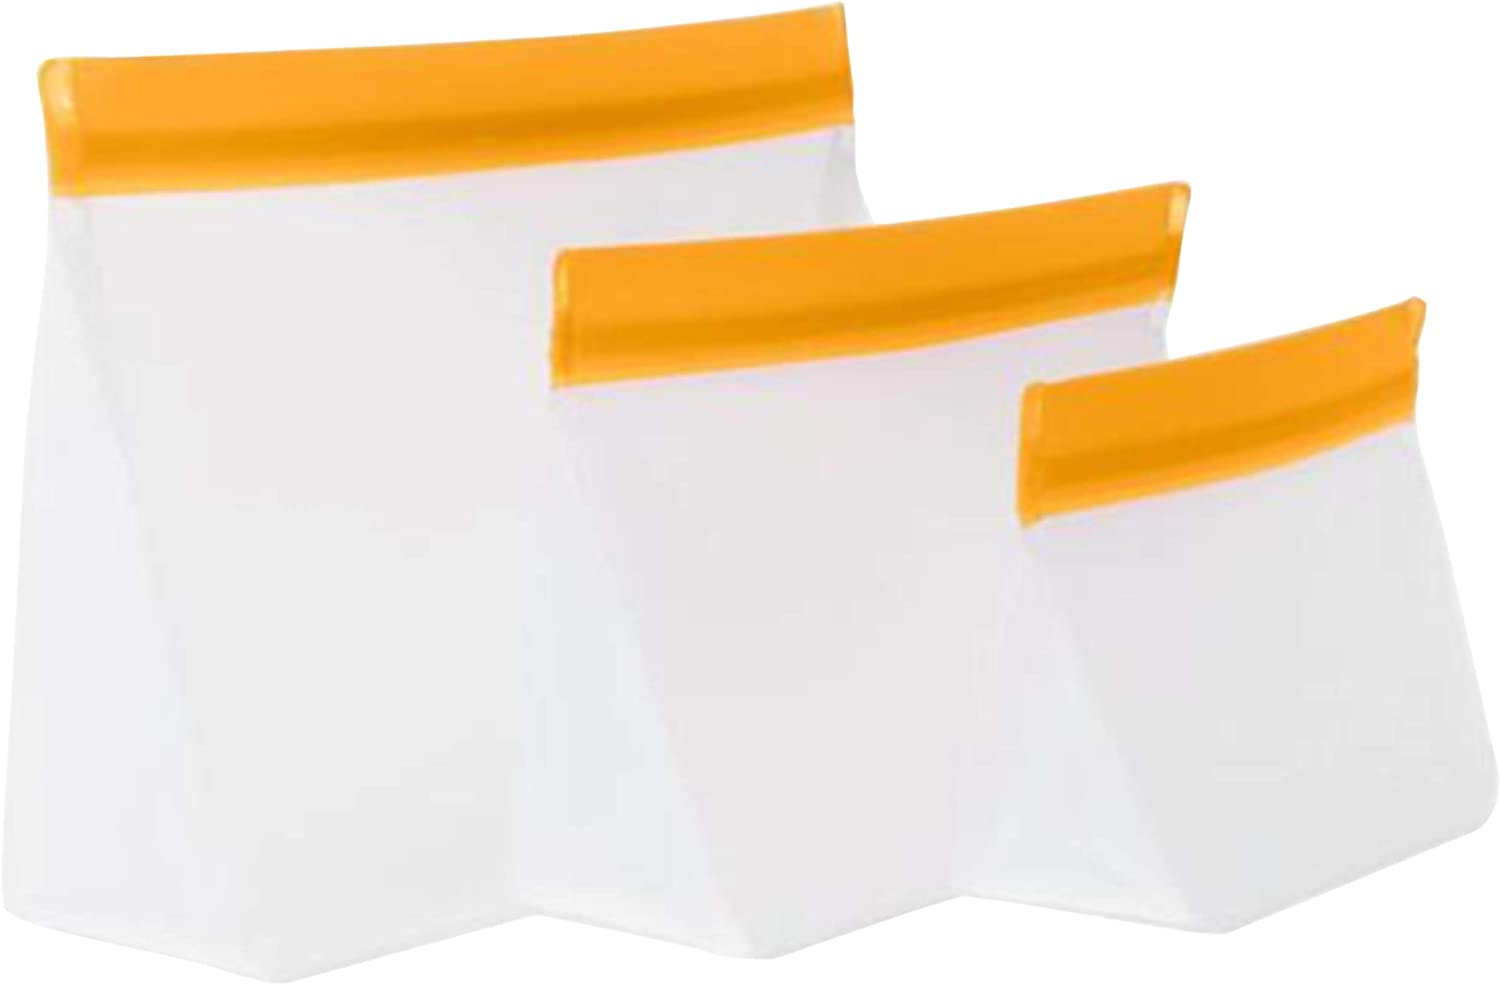 mumi Reusable Zip Up Bags | Food Storage Bags, Travel Organizer | Airtight and Leak-proof Seal | Expandable Base | Set of 3 Reusable Bags (10 x 7, 8 x 5, 6 x 4 inches) (Orange)